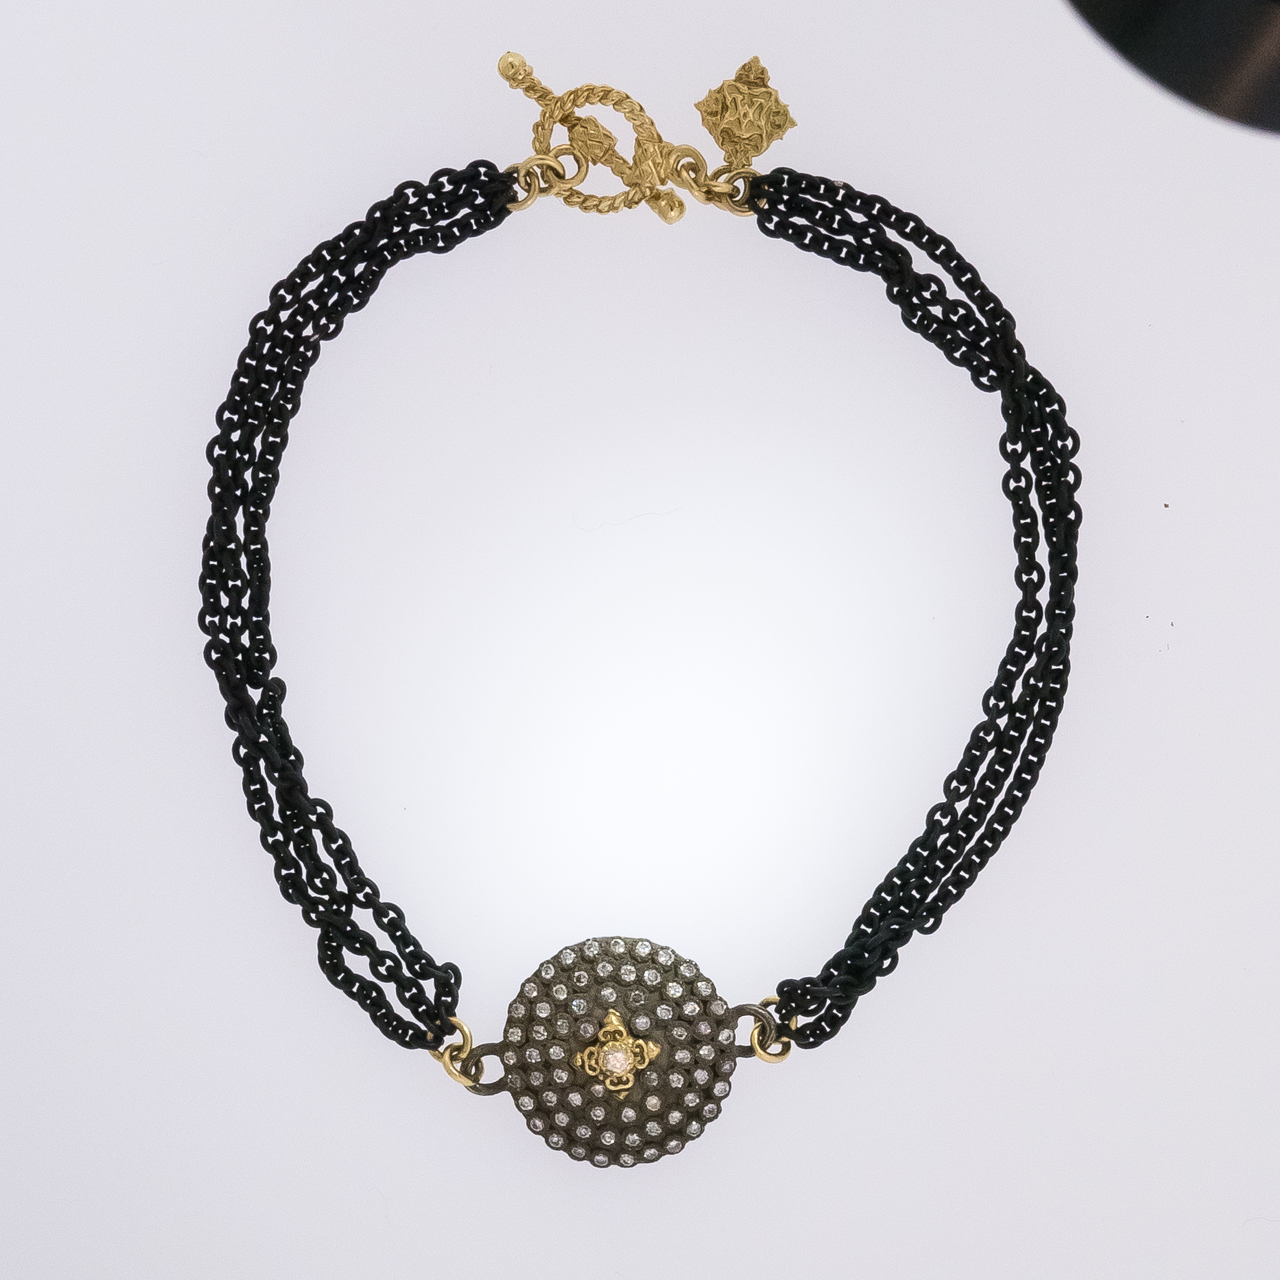 jewelry photo for web before and after